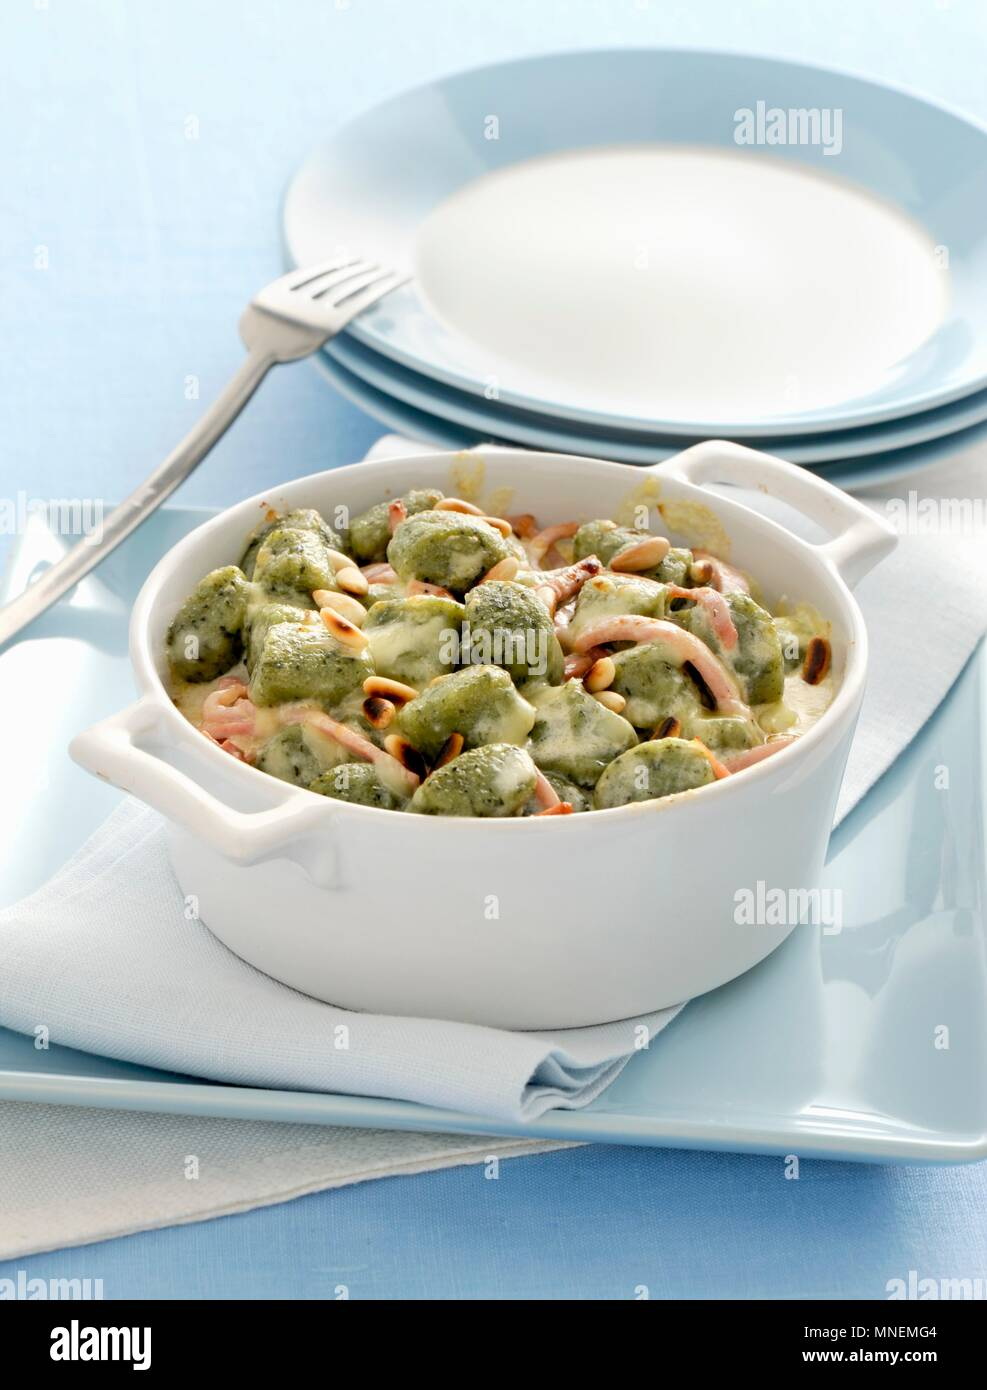 Gratinated spinach gnocchi in a creamy cheese sauce - Stock Image